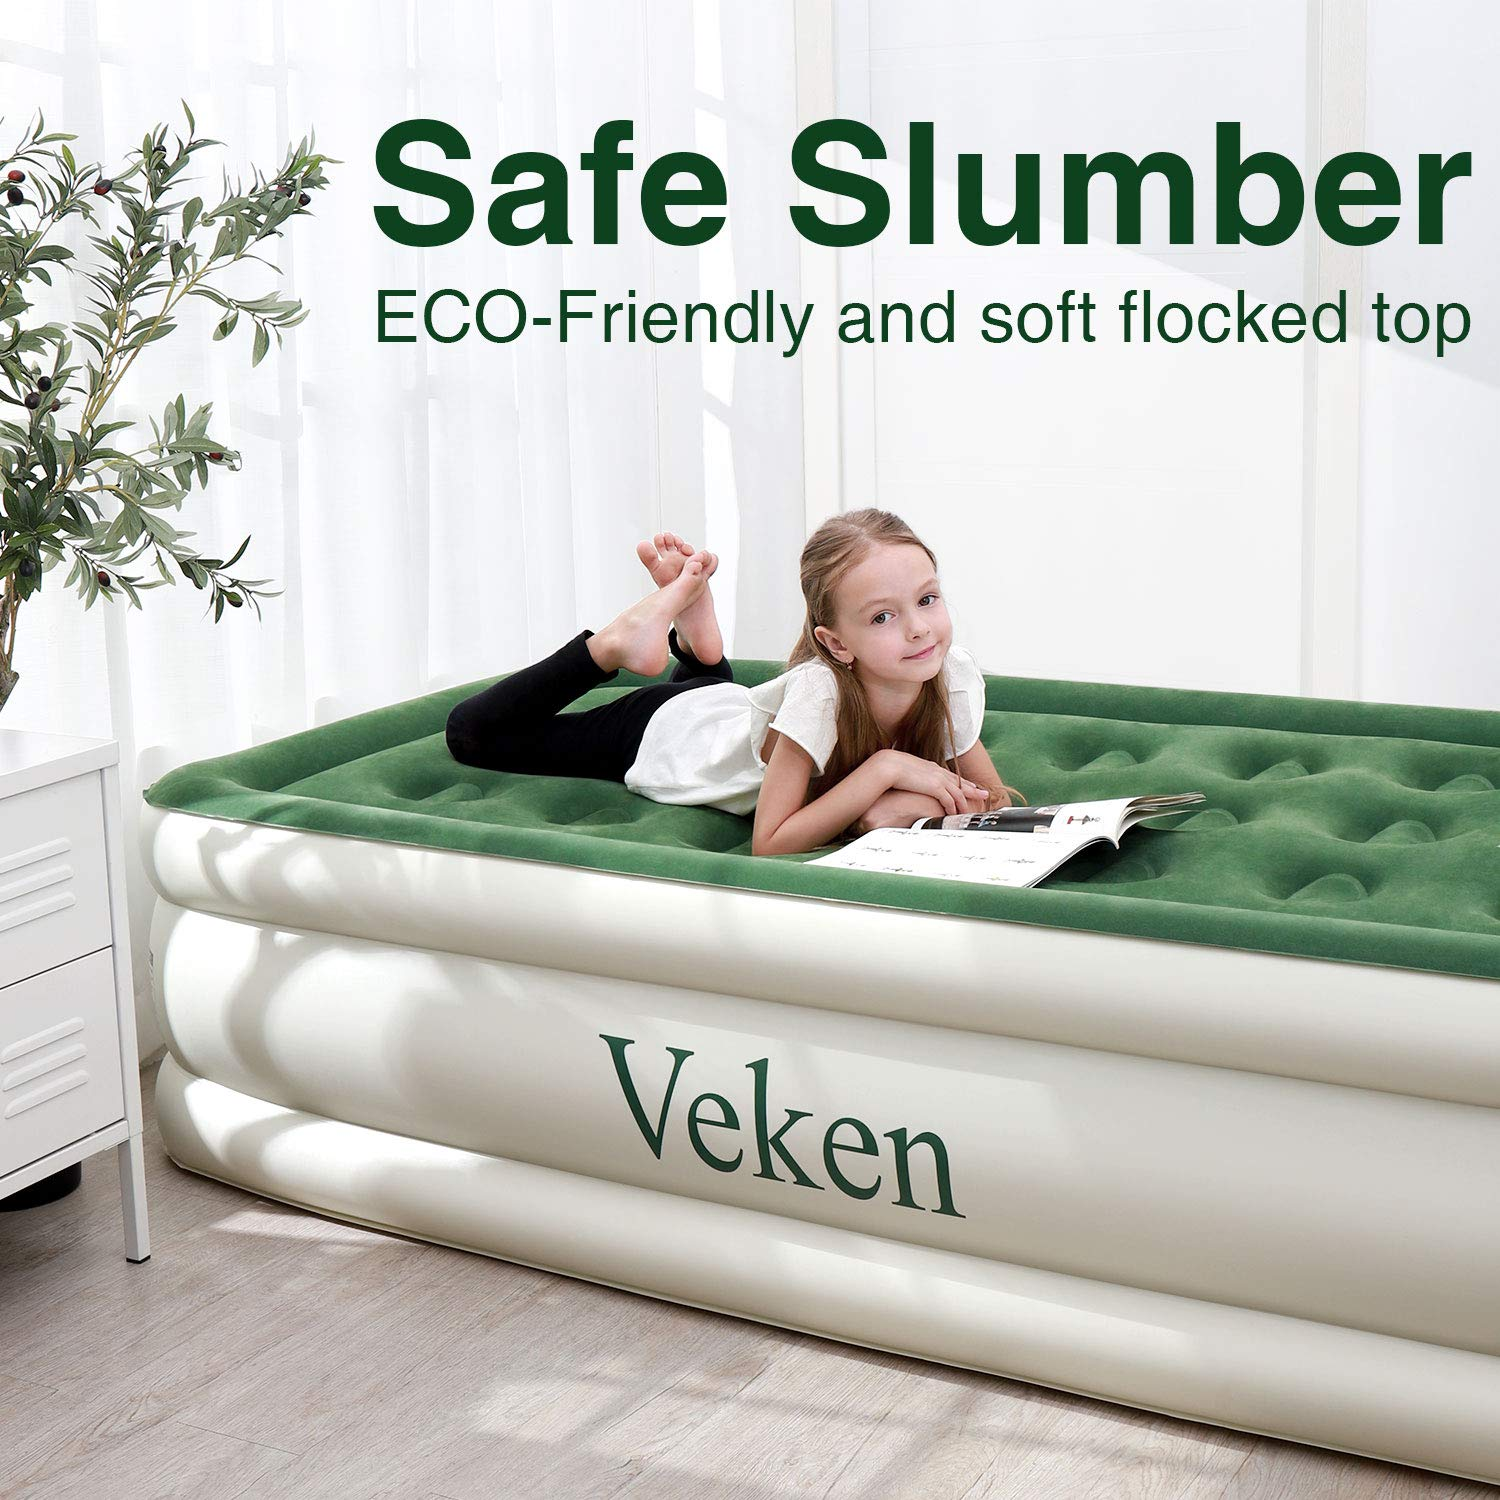 Veken Twin Air Mattress with Built-in Pump, Inflatable 18 Double Height Elevated Airbed with Flocked Top, Best Air Mattresses for Guests, Family, 2-Year Guarantee